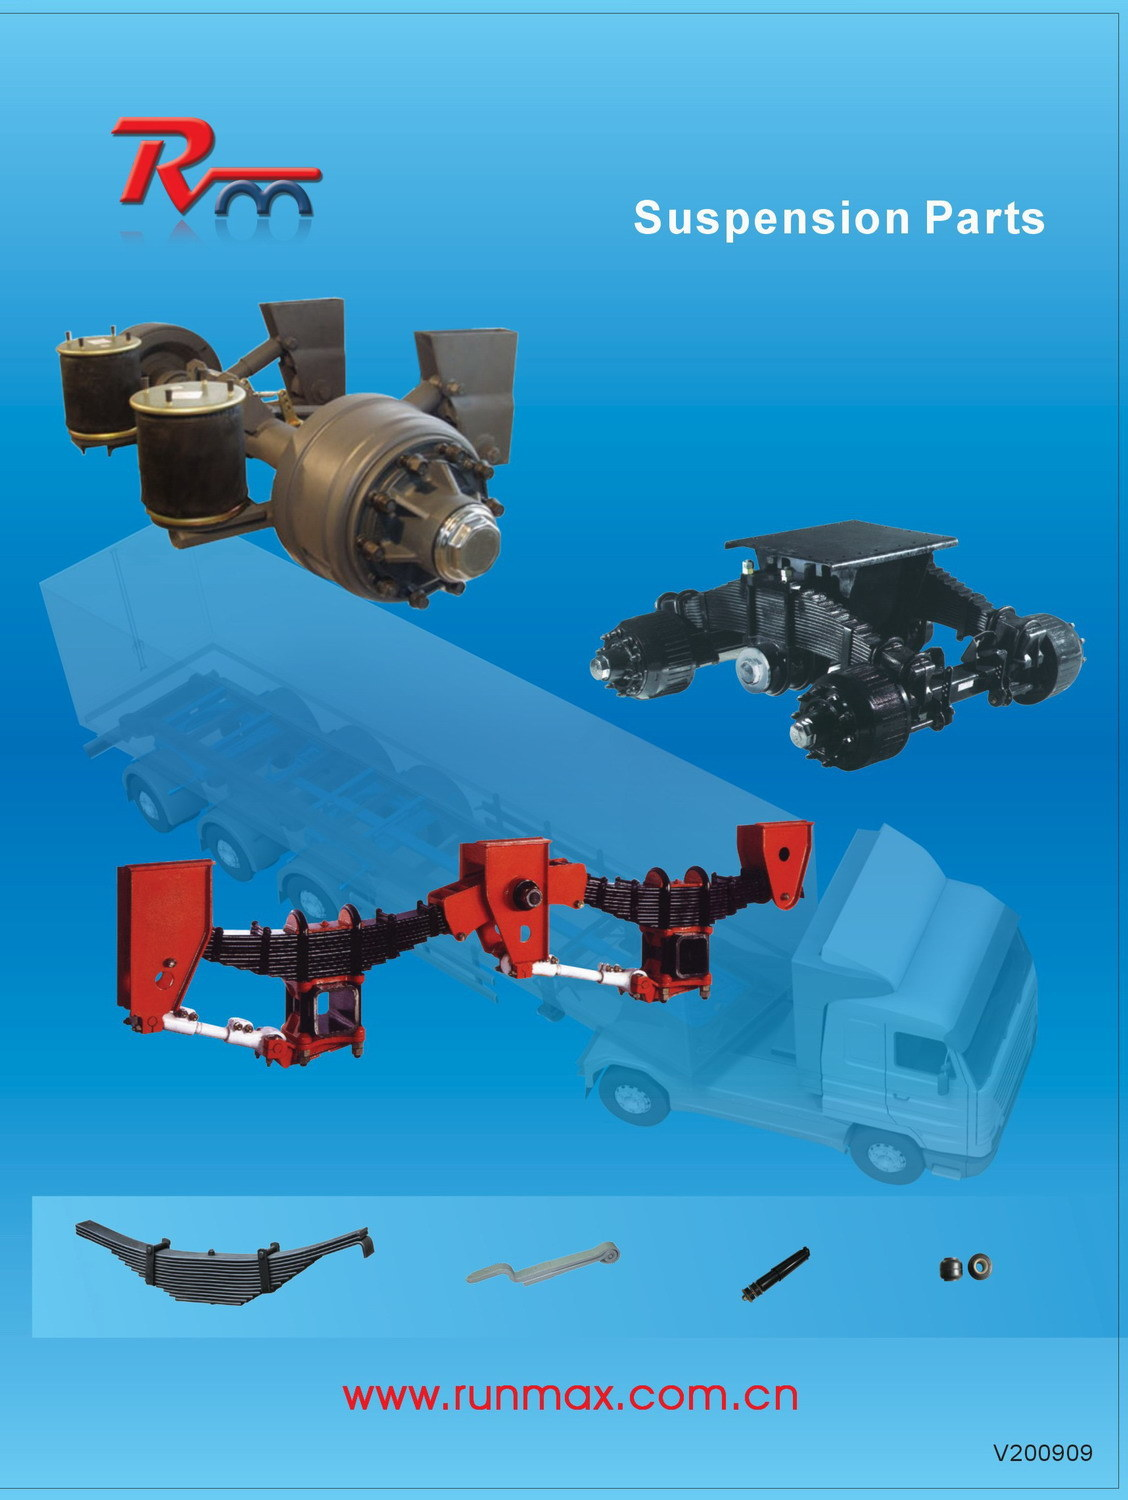 Suspension Parts for Truck Trailer and Heavy Duty